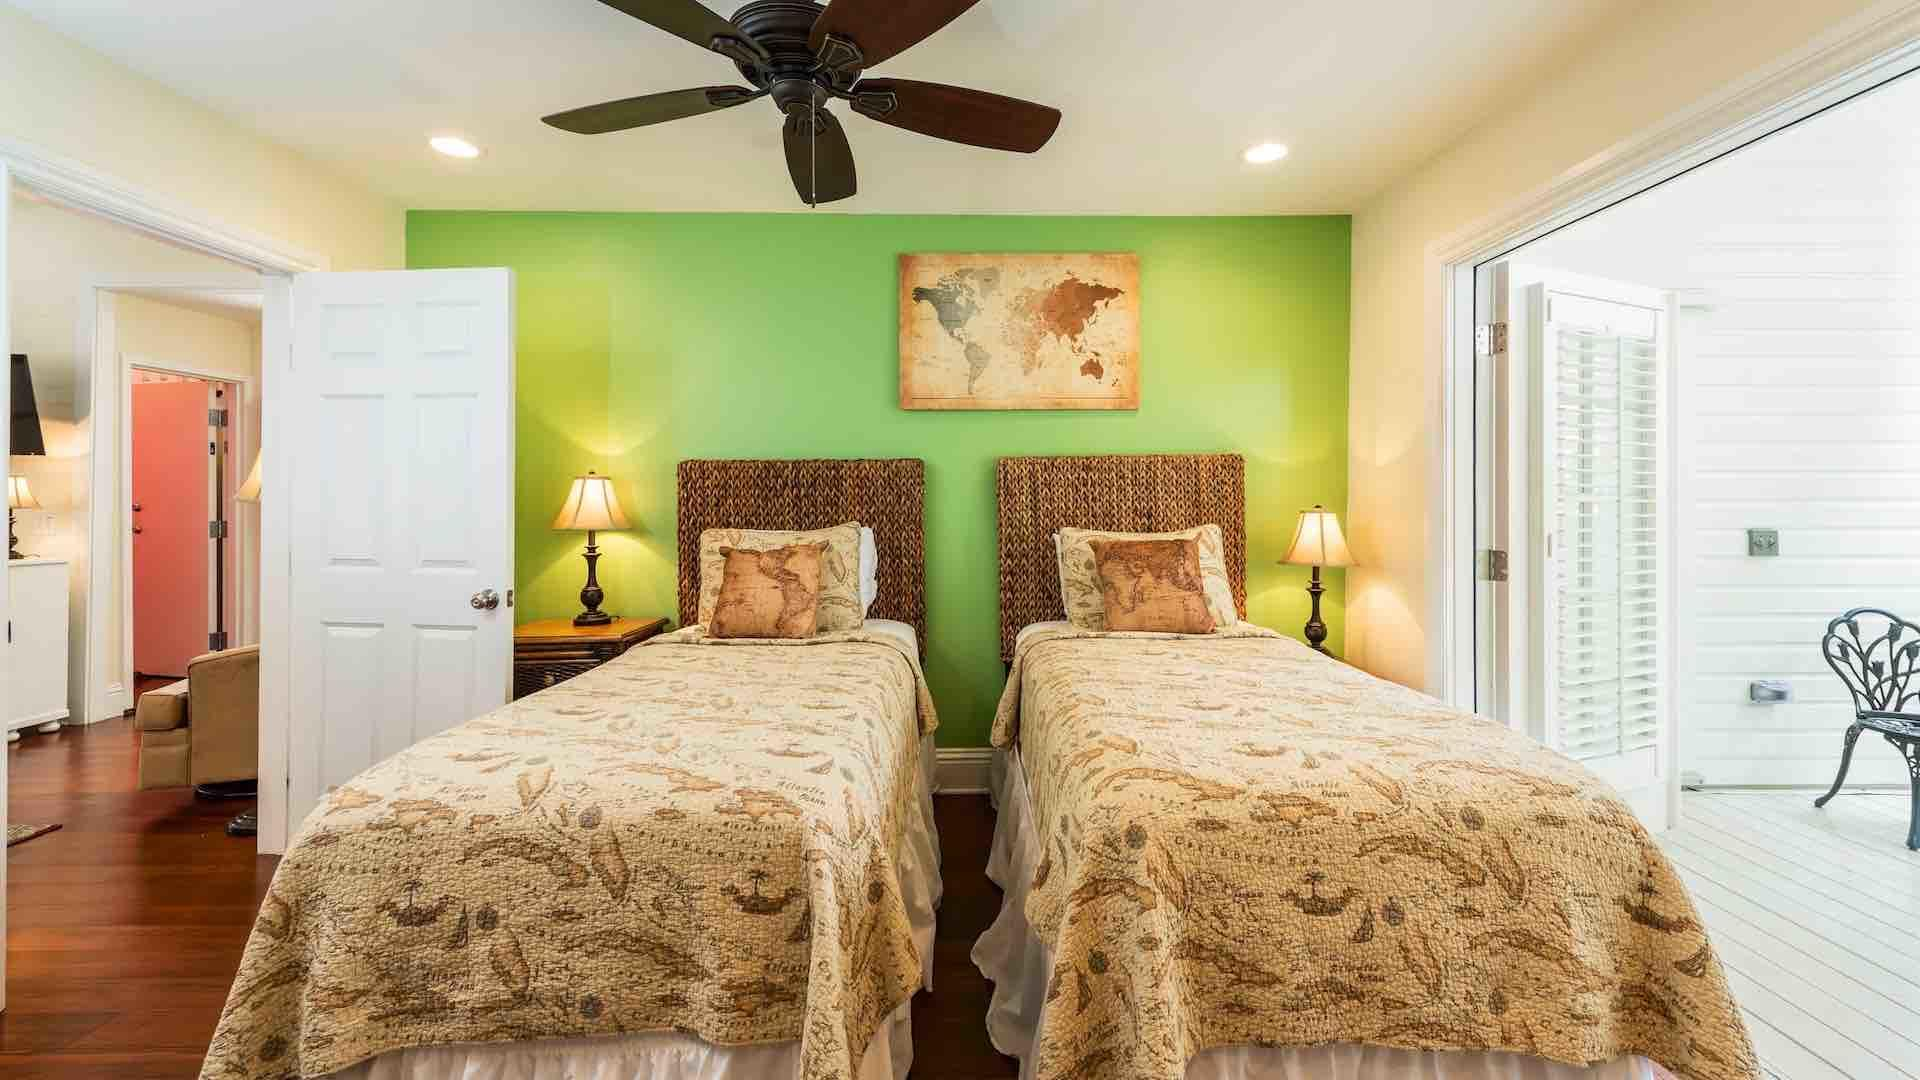 The second downstairs bedroom has two twin beds that can convert to a King bed upon request...